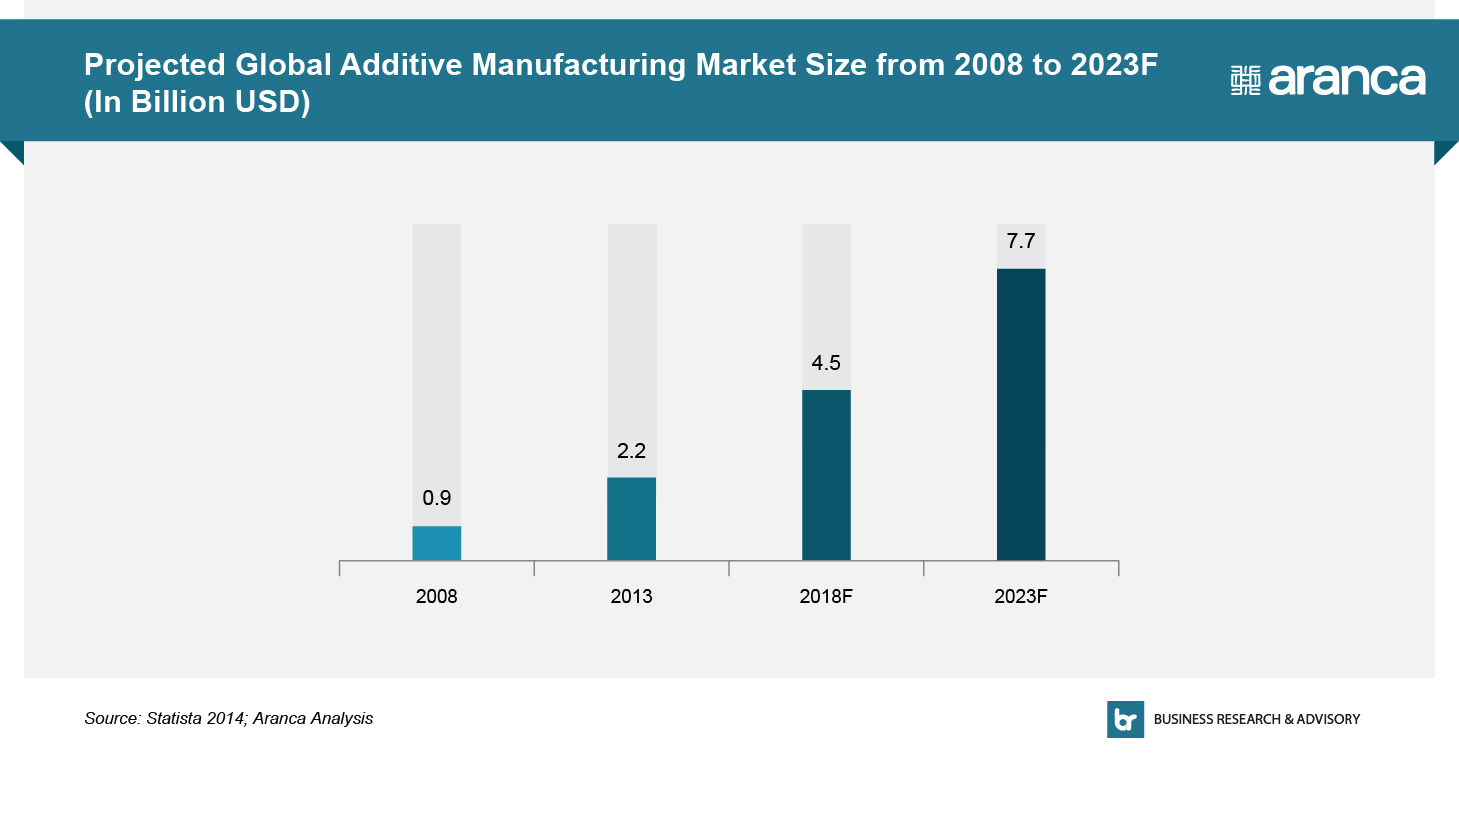 Projected Global Additive Manufacturing Market Size 2008-2023